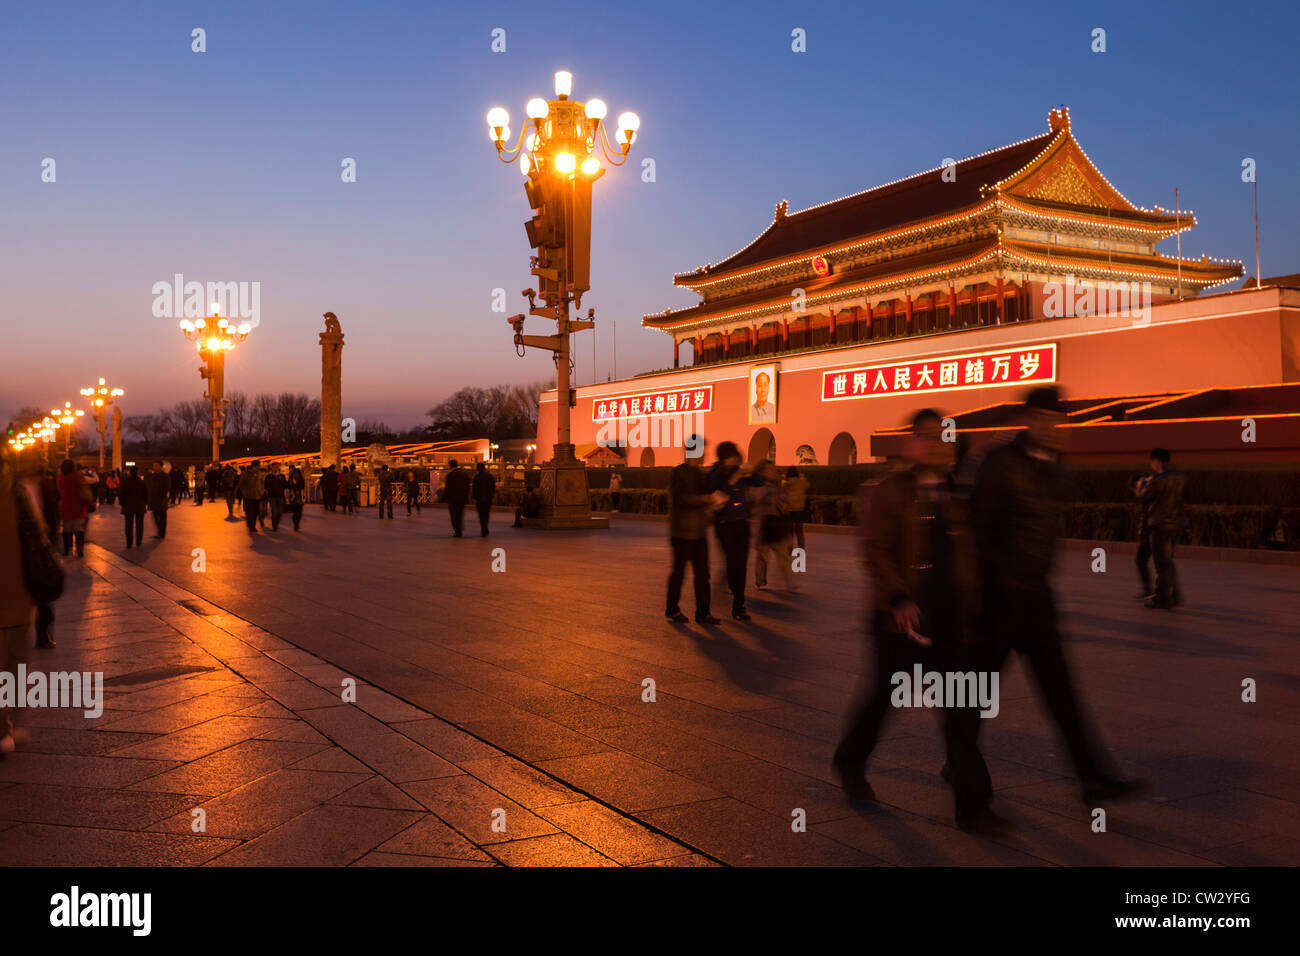 The Tiananmen Gate, the Gate of Heavenly Peace, Beijing, China, - Stock Image